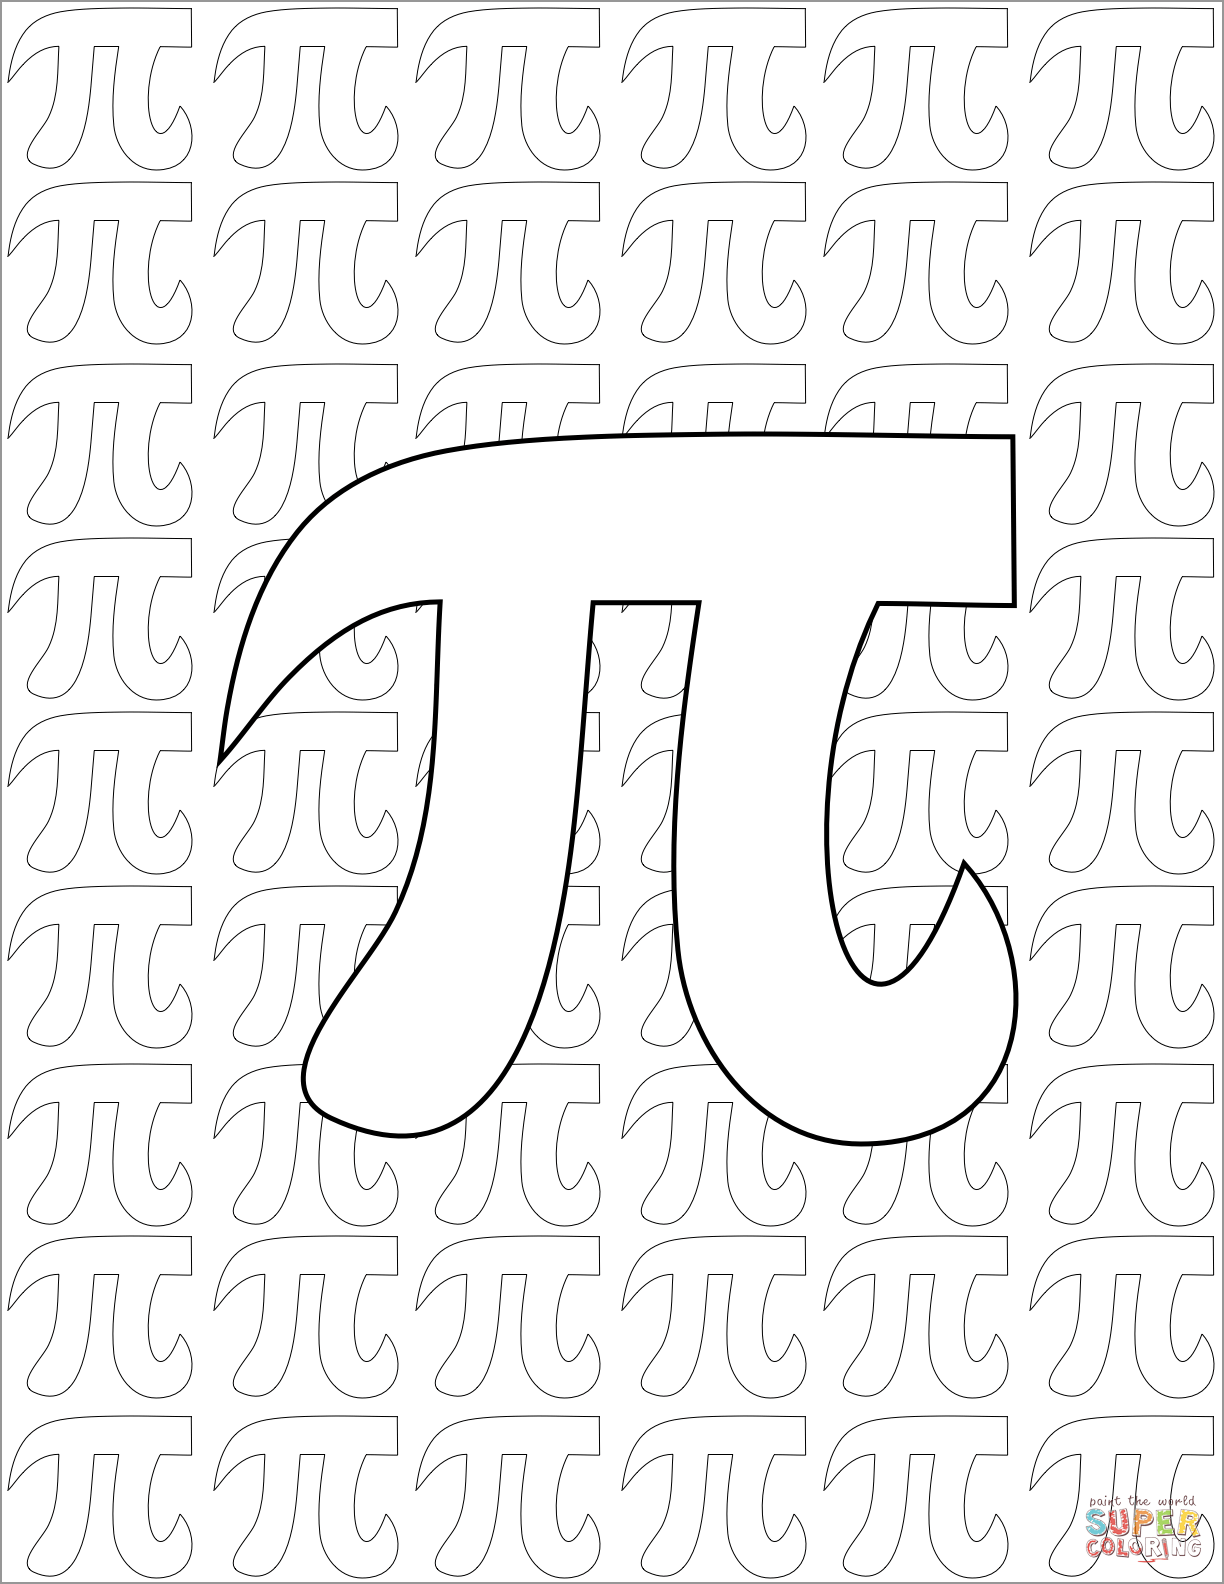 Worksheets Pi Day Worksheets Cheatslist Free Worksheets